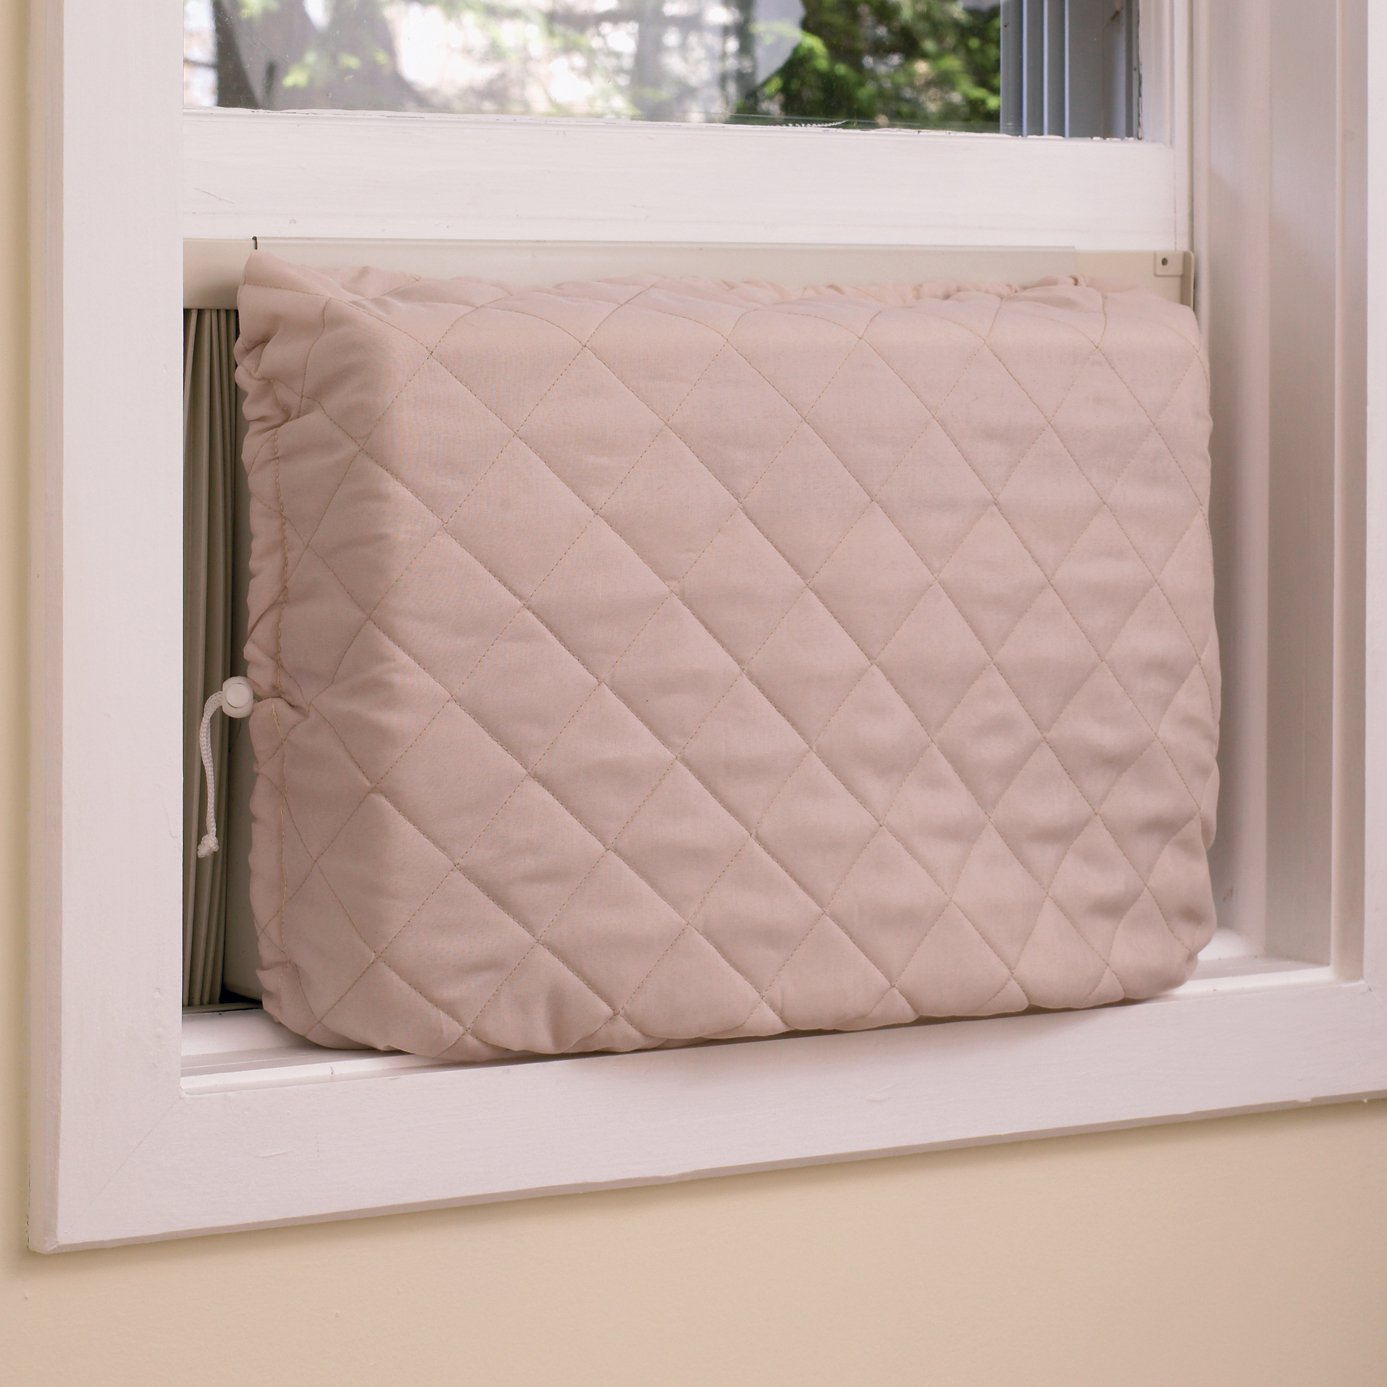 Twin Draft Guard Indoor Air Conditioner Cover   Keep Air Conditioner Clean:  Amazon.ca: Home U0026 Kitchen